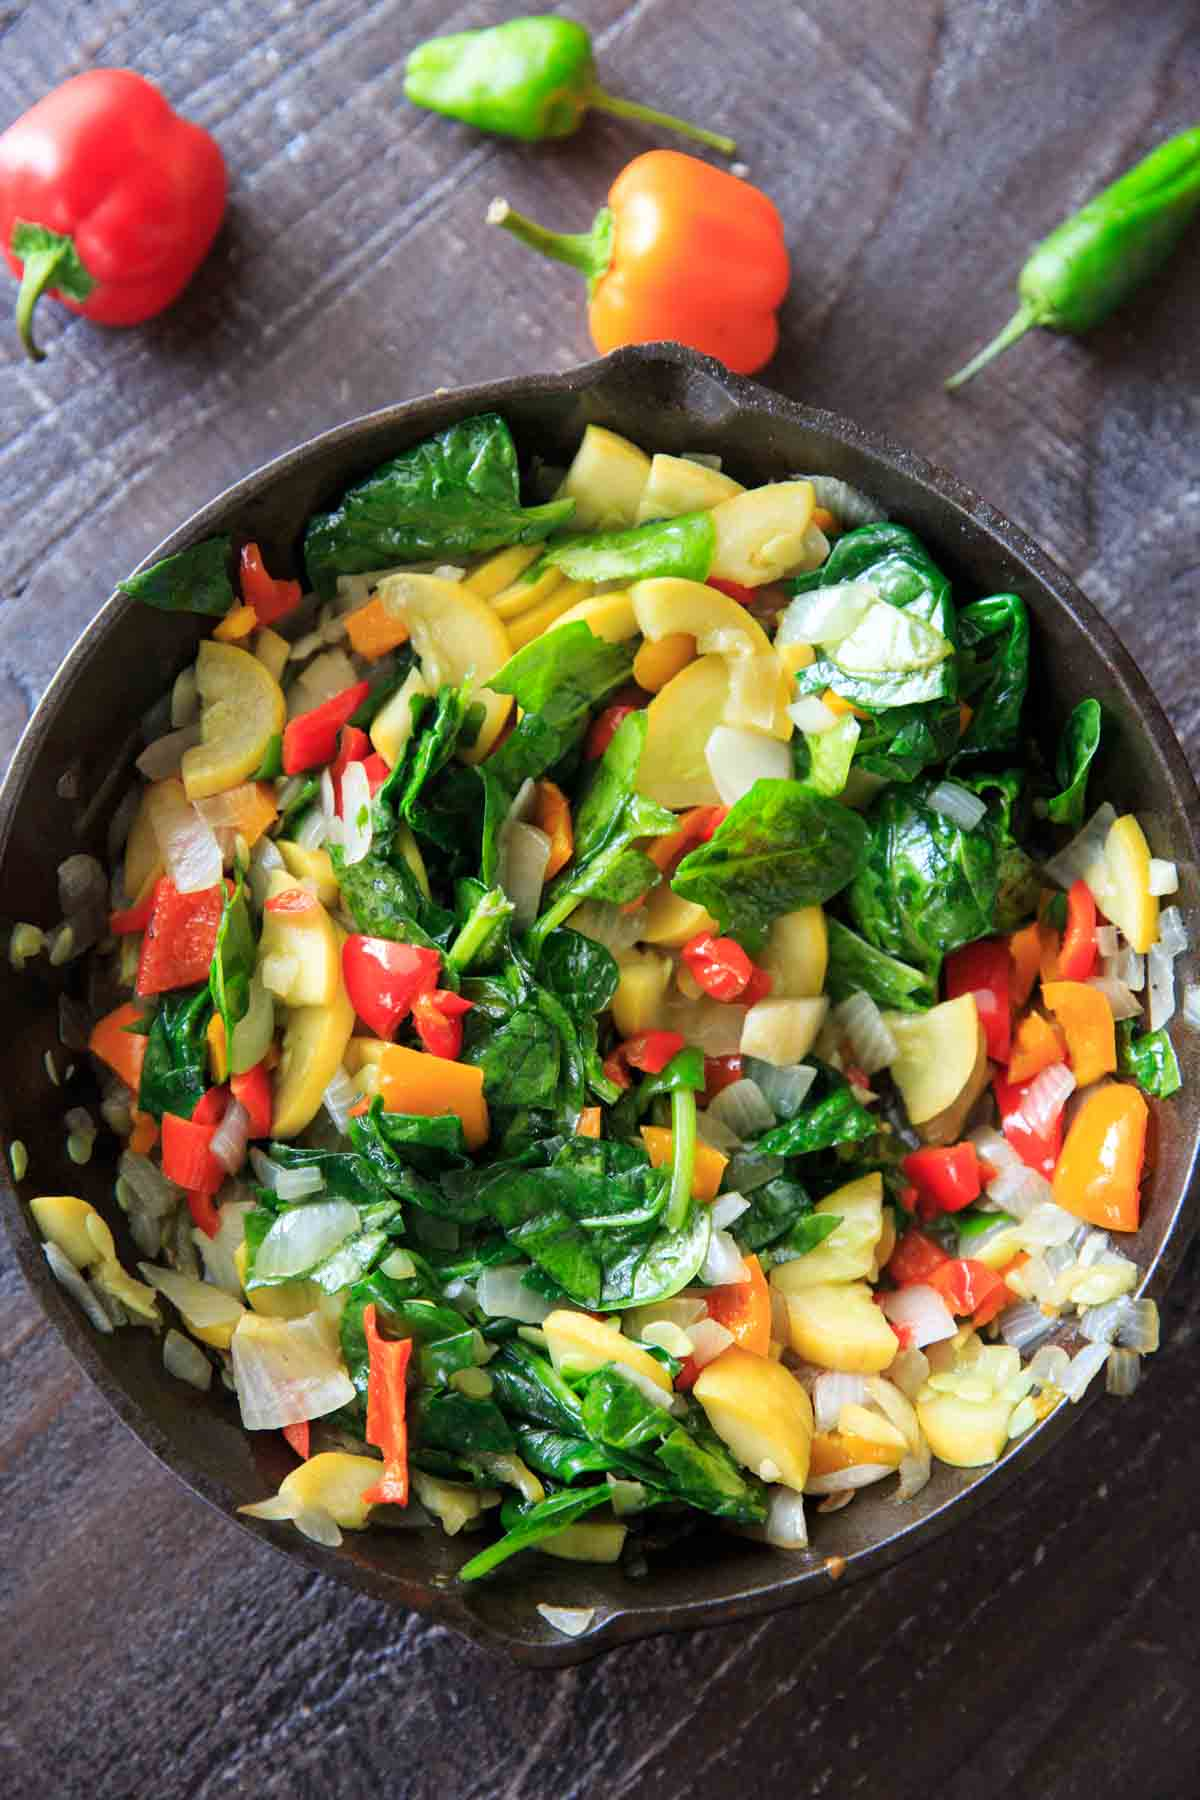 sauteed produce with spinach